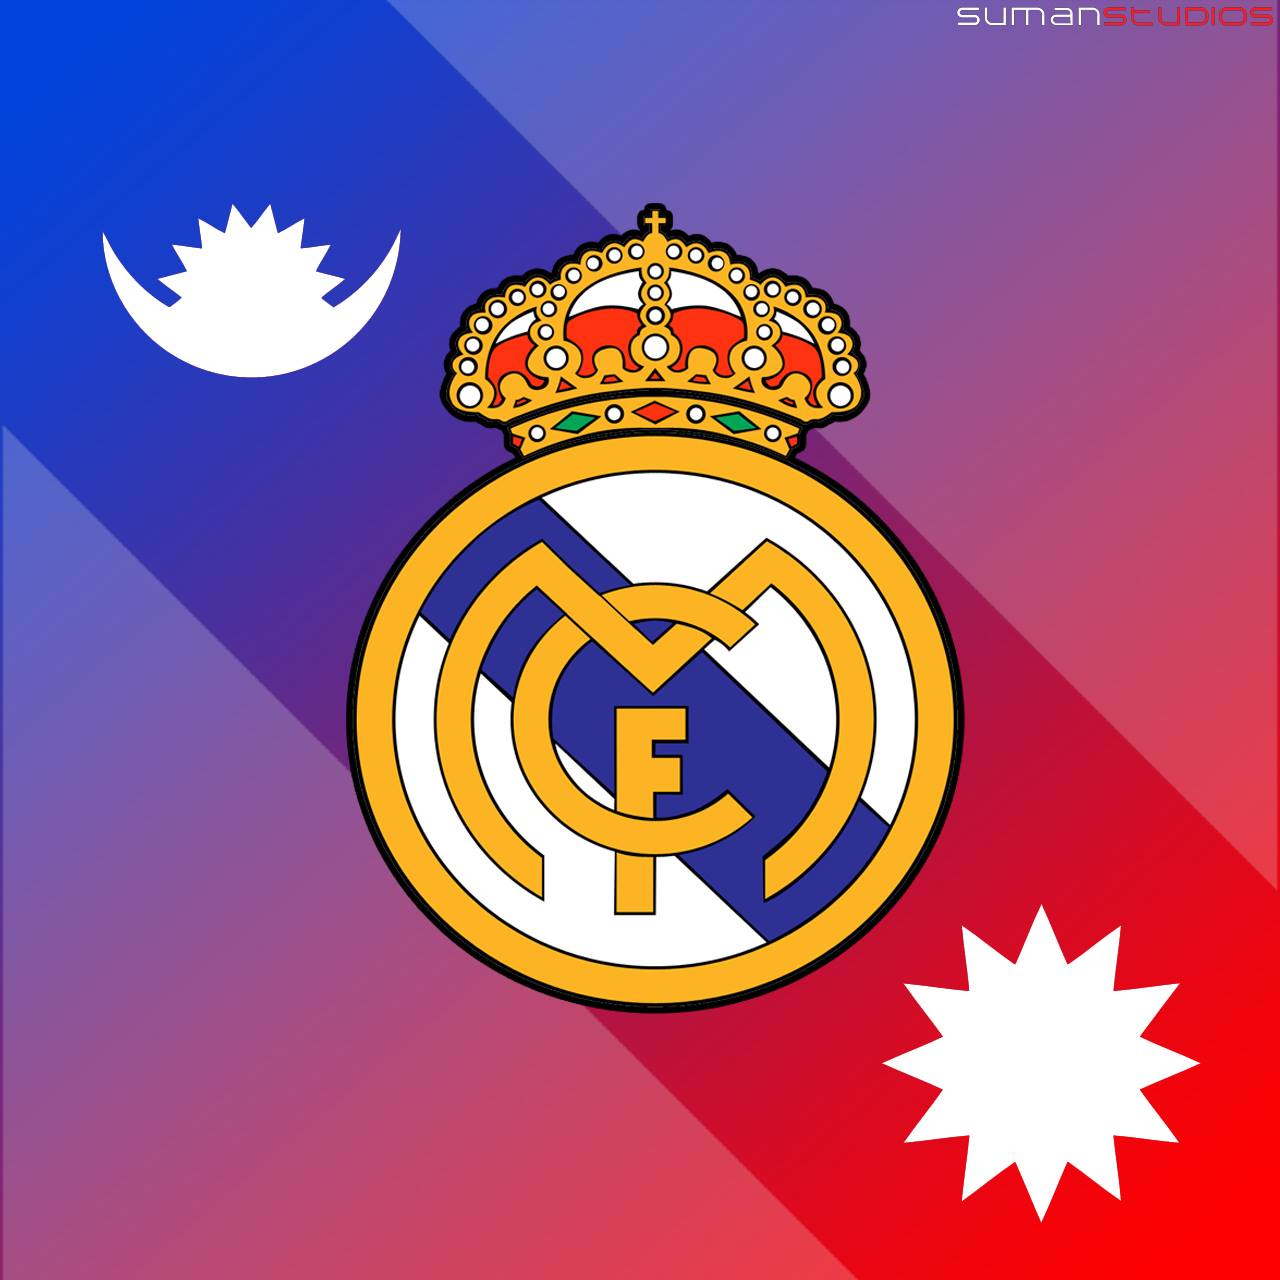 Sumanstudios real madrid fc nepal logo wallpaper by sumanstudios real madrid fc nepal logo wallpaper by sumanstudios voltagebd Images